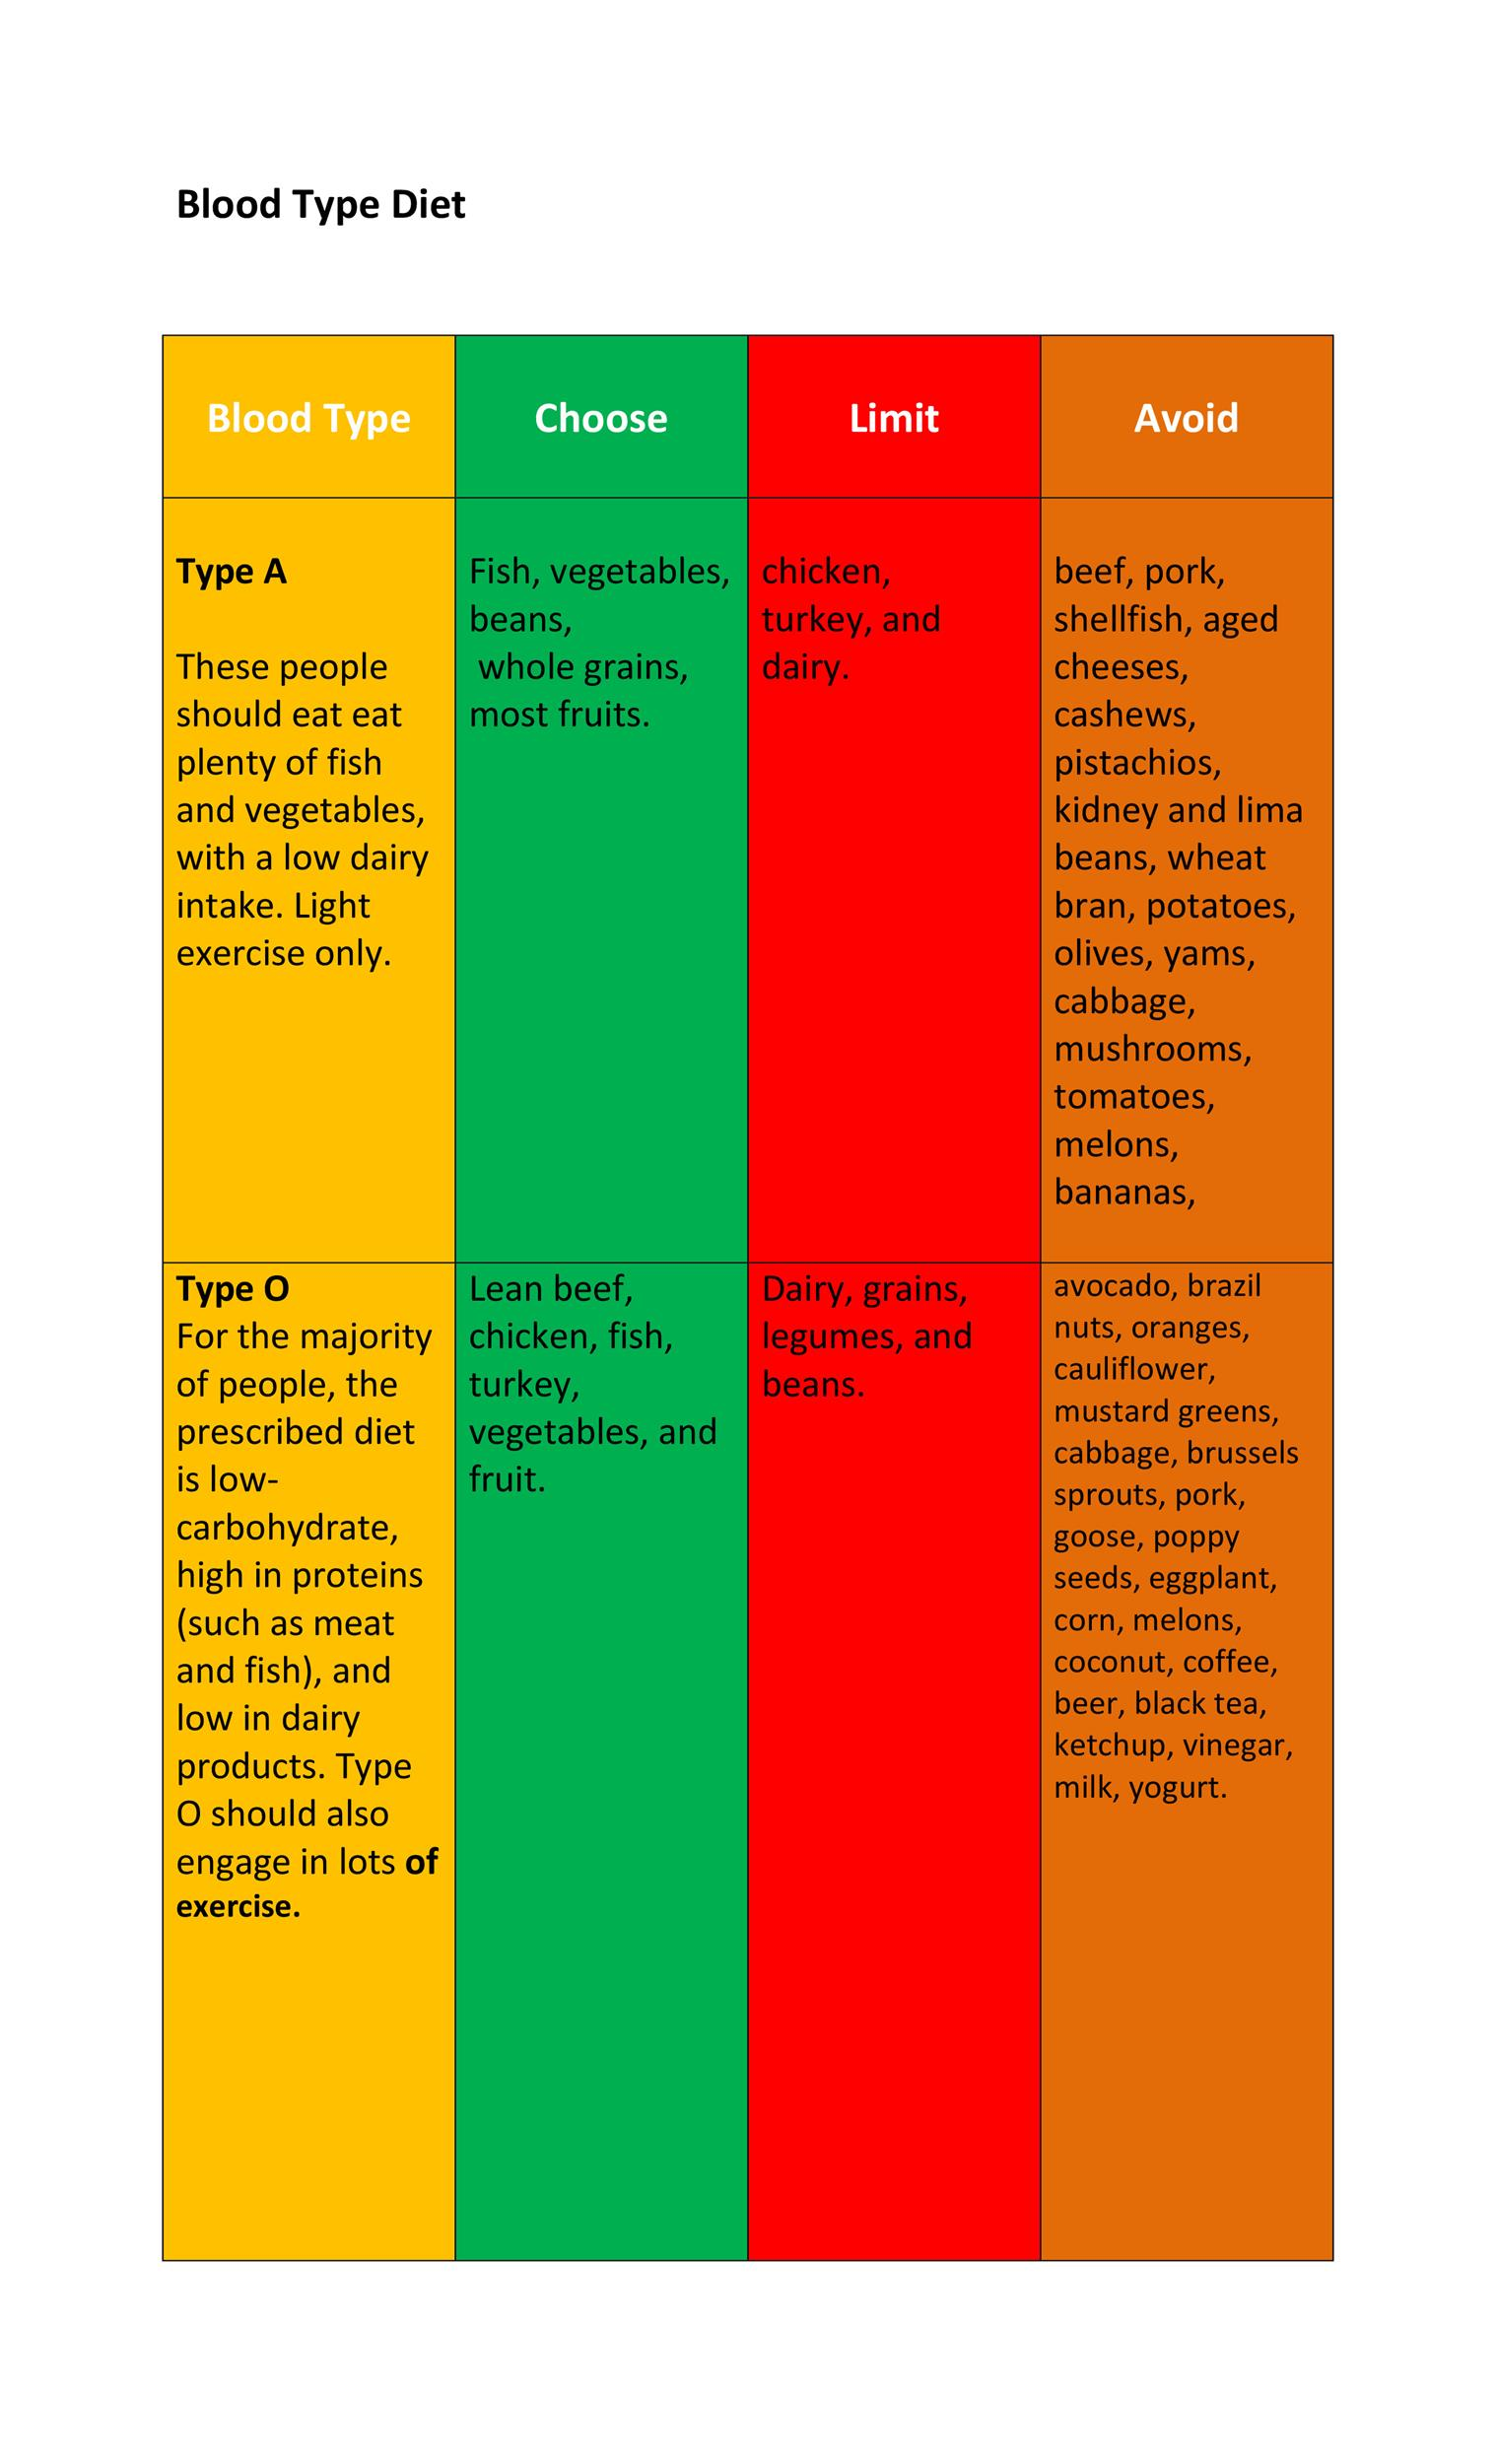 Free Blood type Diet chart 02